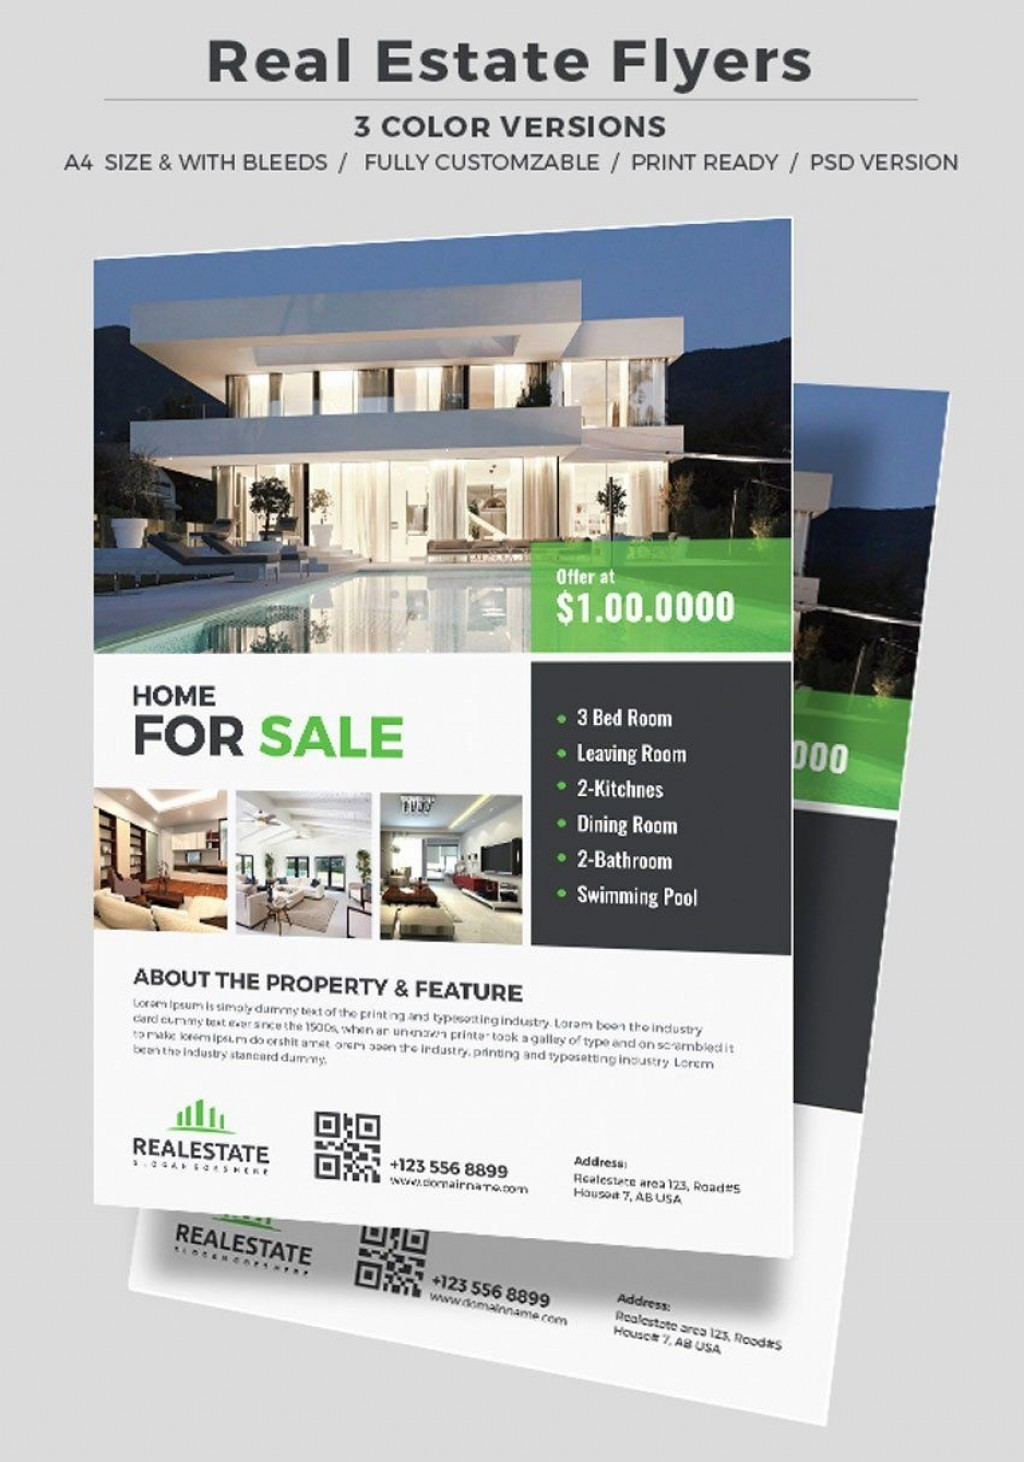 002 Unforgettable Real Estate Advertising Template Photo  Facebook Ad CraigslistLarge